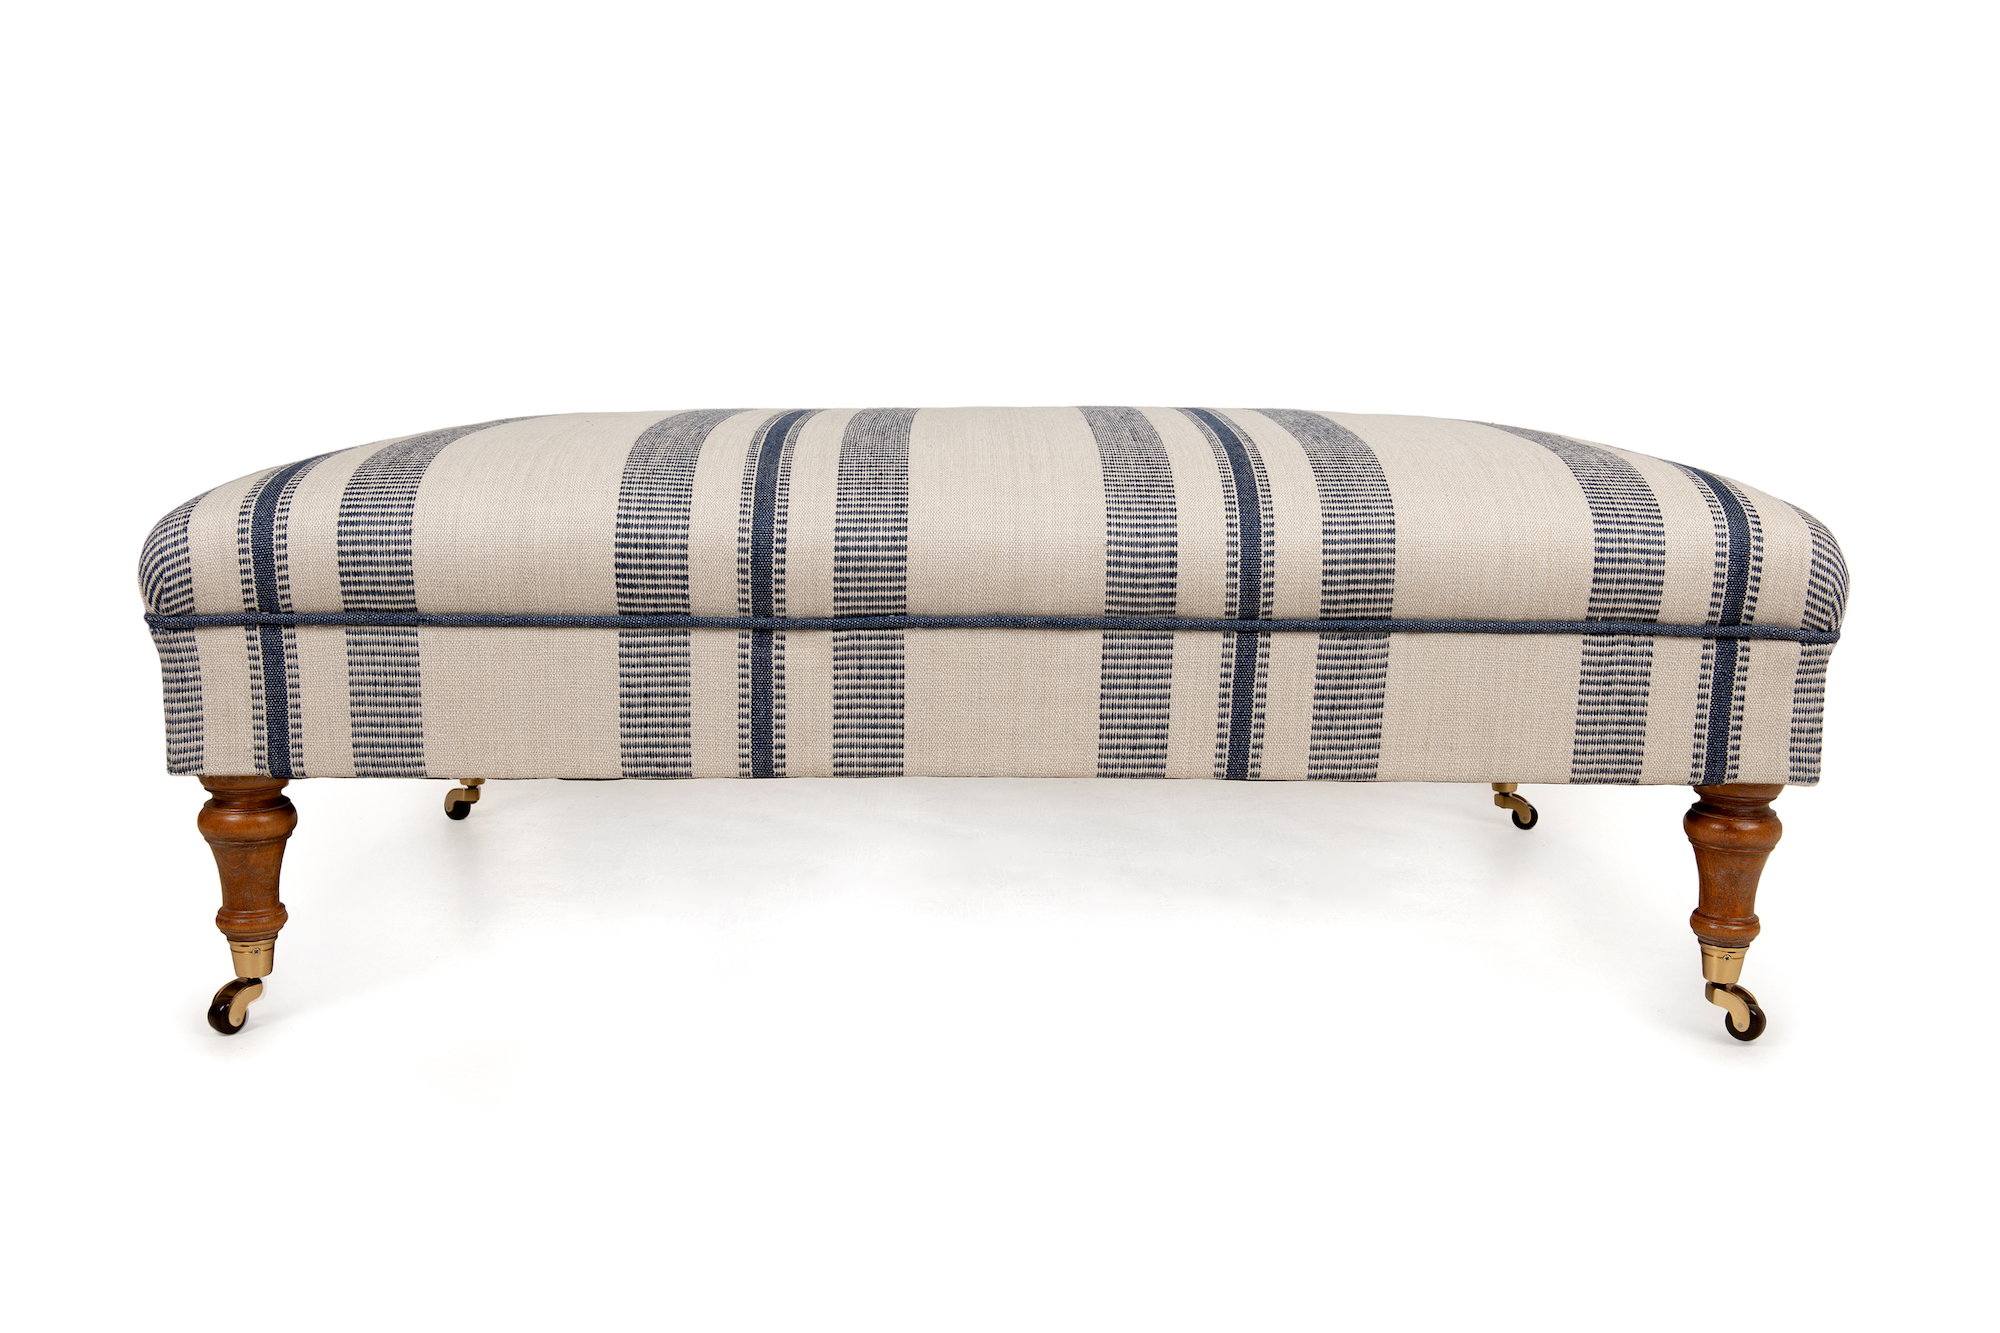 Vertical Stripe Roll Top Footstool, with Edging Fabric Band Trim and Turned Legs with Castors